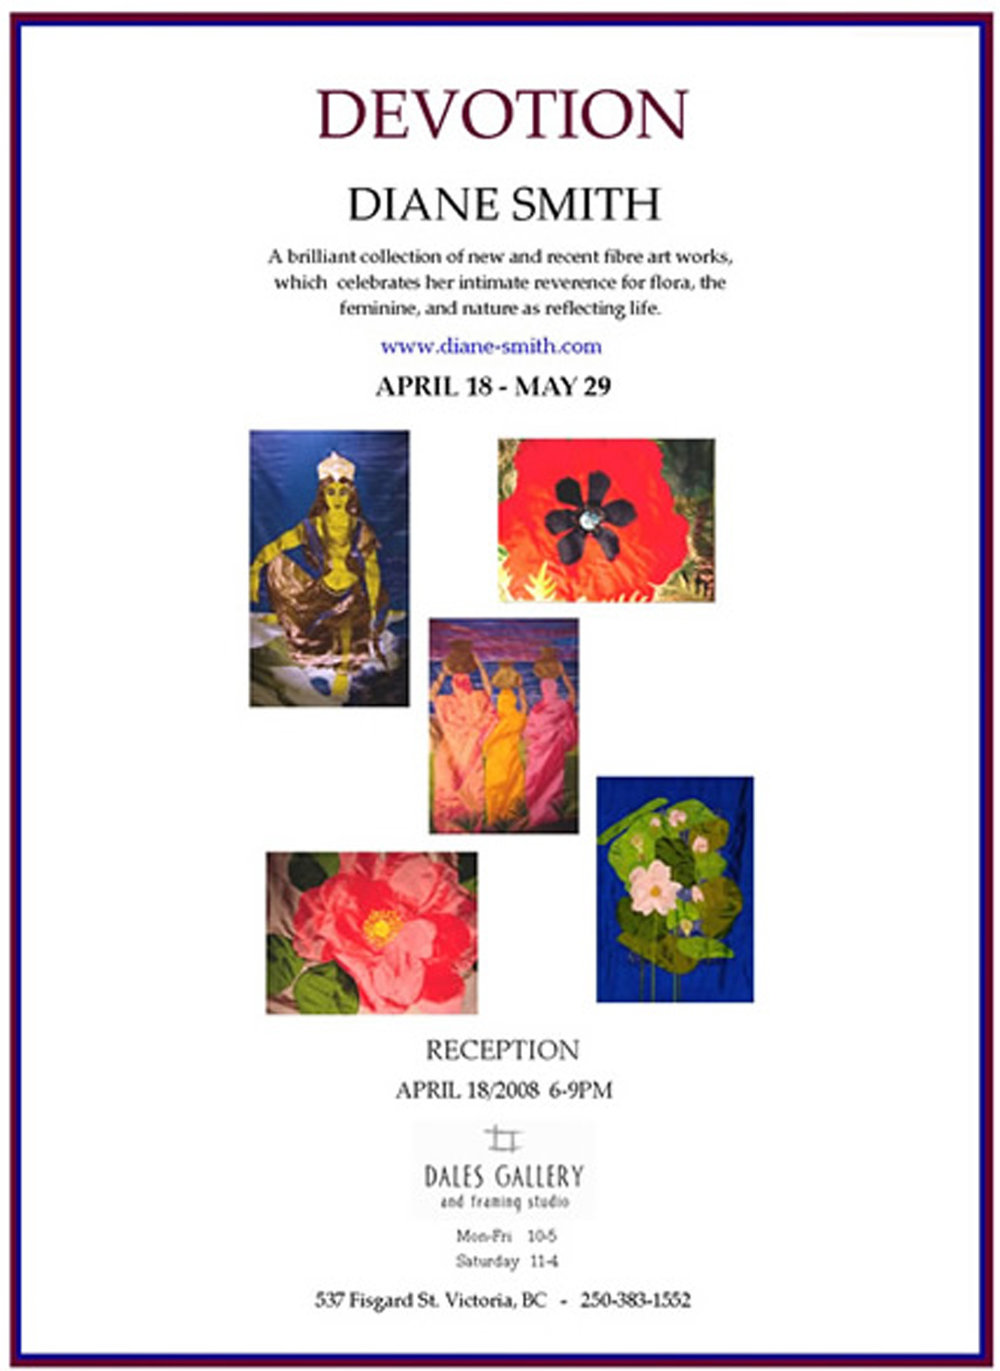 Diane Smith - DEVOTION Apr 18 - May 29 2008